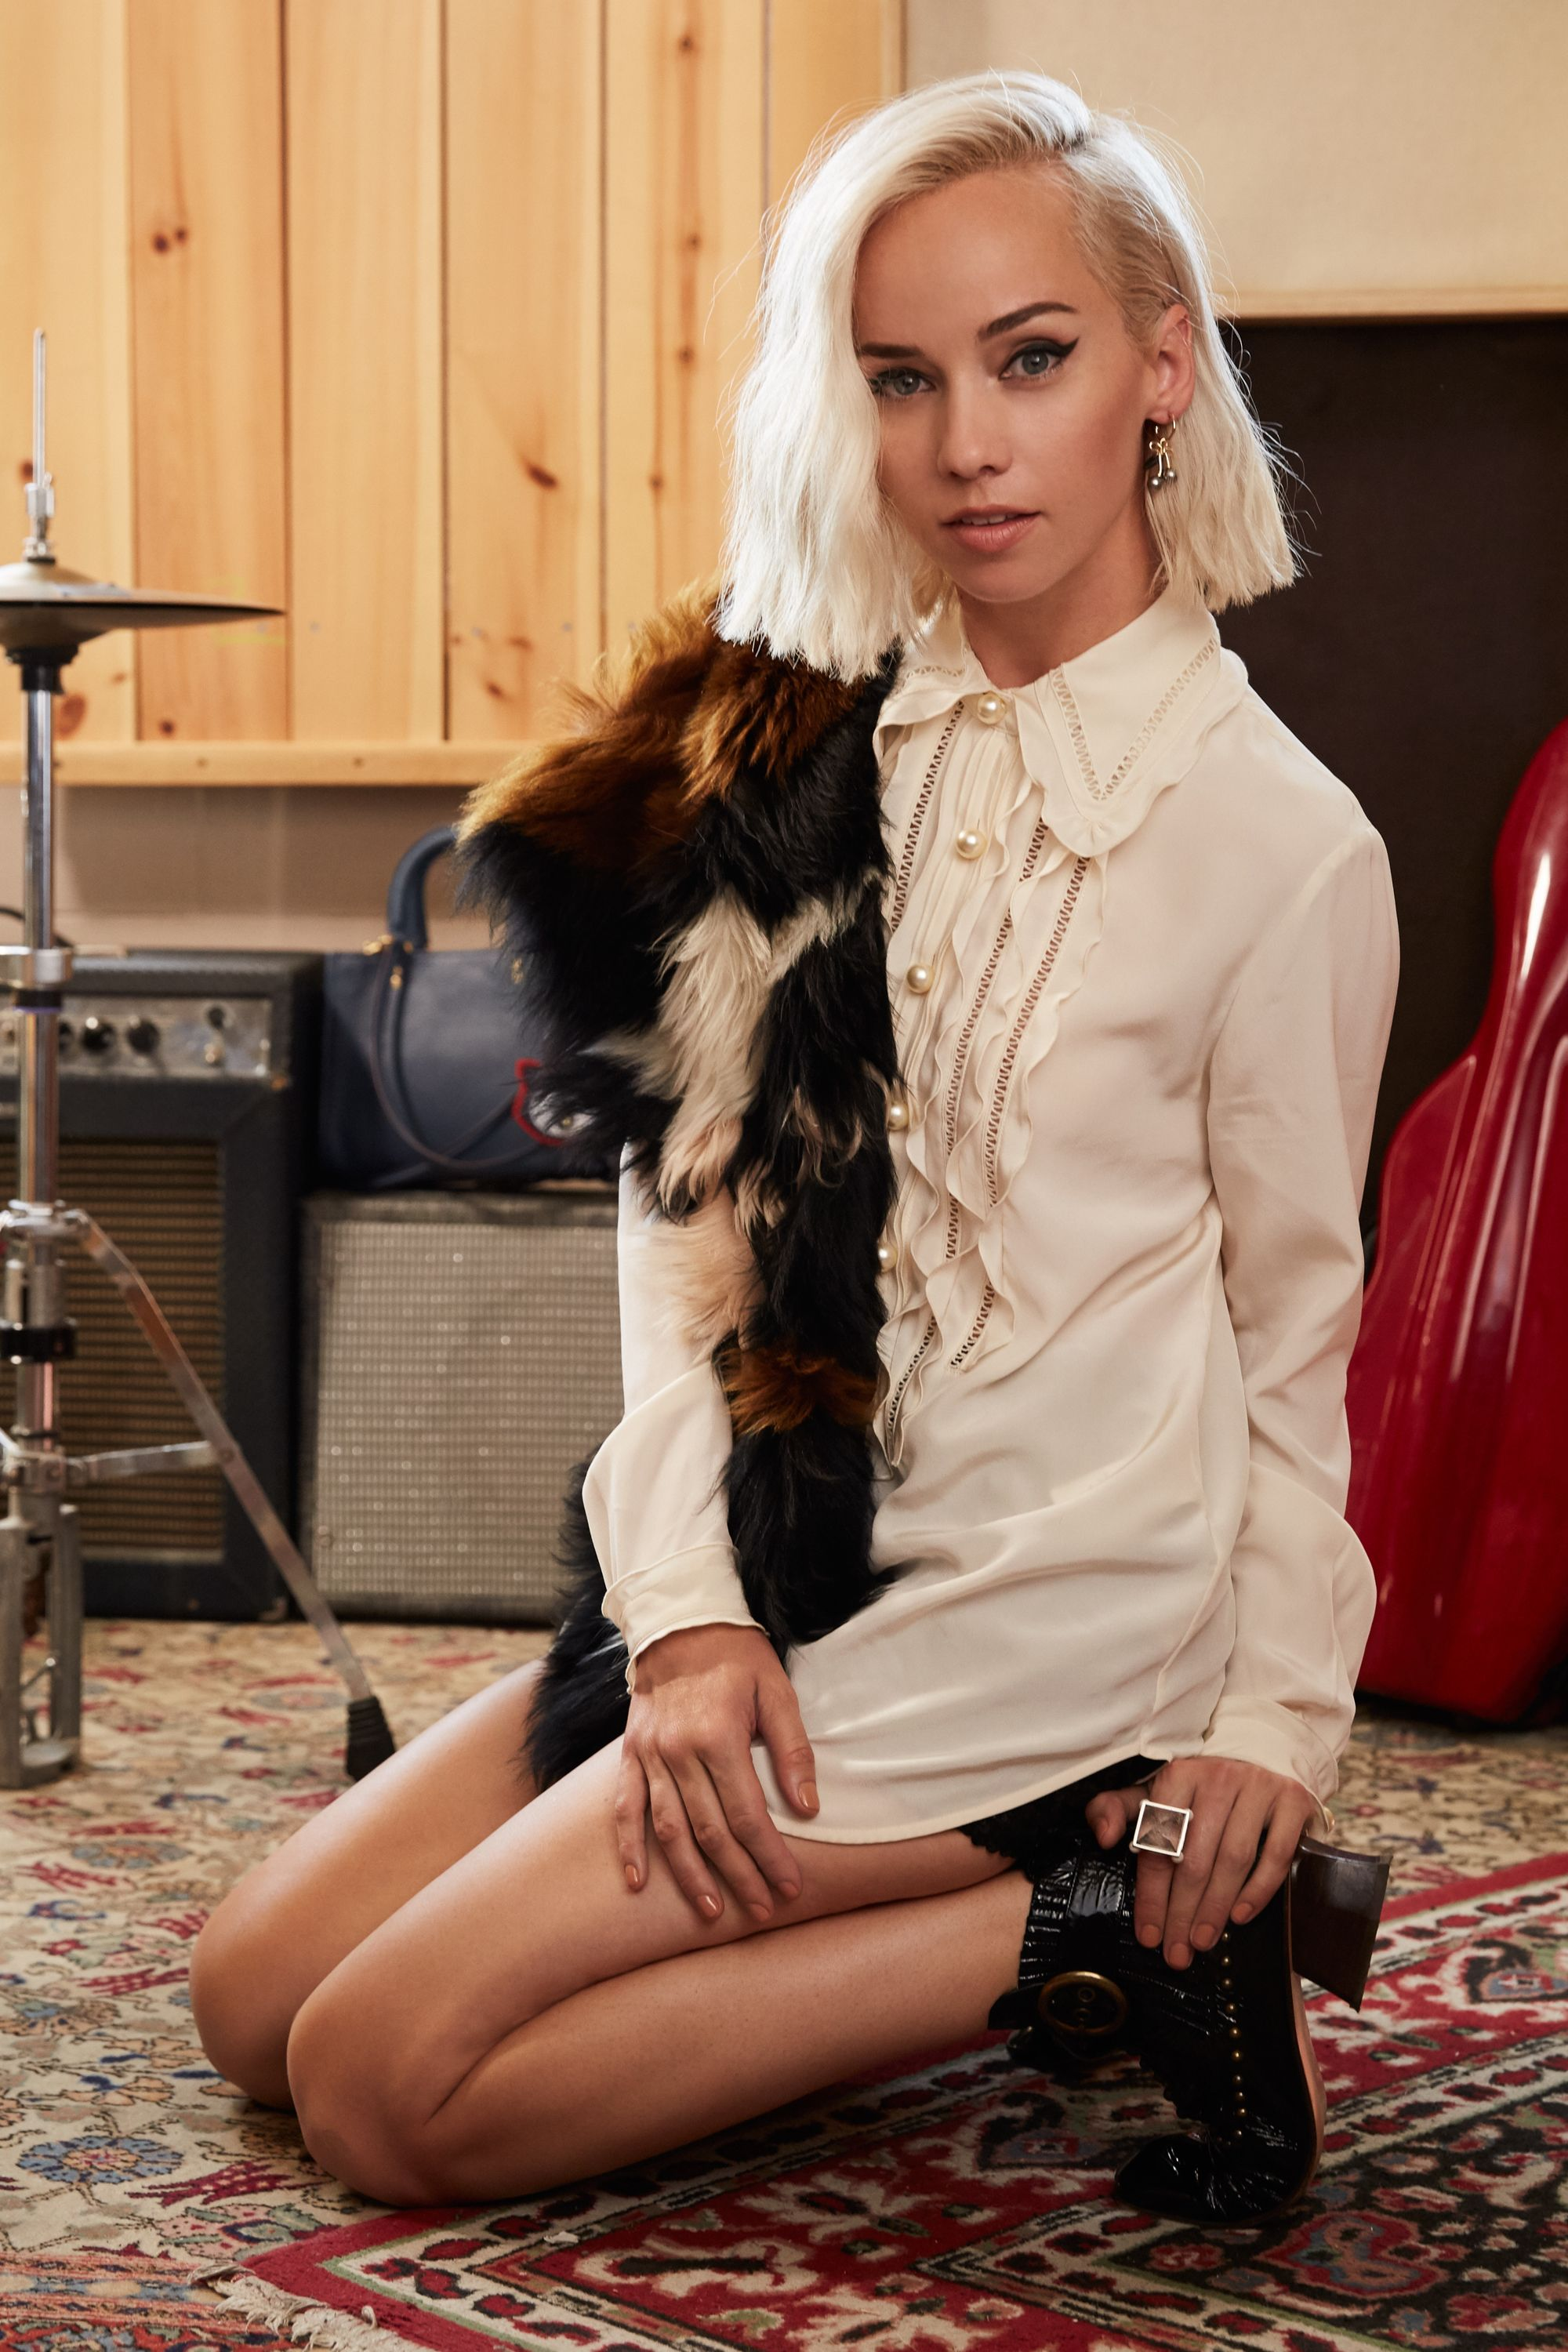 "<p>""This beautiful white collared shirt with pearl buttons is versatile and could work with any style,"" Margot says. ""It's great to keep things simple, but have one flashy accessory."" That epic fur shawl is the perfect accessory, yes? </p><p><em data-redactor-tag=""em"">Coach 1941 Shirt with Ruffle, $450, <a rel=""noskim"" href=""http://www.coach.com/coach-designer-tops-shirt-with-ruffle-/56450.html?CID=D_B_MRC_11504"" target=""_blank"" data-saferedirecturl=""https://www.google.com/url?hl=en&q=http://www.coach.com/coach-designer-tops-shirt-with-ruffle-/56450.html?dwvar_color%3DIVO%26dwvar_size%3D10&source=gmail&ust=1472912485399000&usg=AFQjCNFu-5mNfcV_BwvaWgho10mbWePGrg"">coach.com</a>; Coach 1941 Chelsea Boot $575, <a rel=""noskim"" href=""http://www.coach.com/coach-designer-booties-chelsea-boot/Q8919.html?CID=D_B_MRC_11505"" target=""_blank"" data-saferedirecturl=""https://www.google.com/url?hl=en&q=http://www.coach.com/coach-designer-booties-chelsea-boot/Q8919.html?dwvar_size%3D11%2520%2520B%26dwvar_color%3DBLK&source=gmail&ust=1472912485399000&usg=AFQjCNFD7eK4KlYwxBbjkclJoklYvw1RXA"">coach.com</a>; Coach 1941 B-Boy Shearling Shawl, $795, <a rel=""noskim"" href=""http://www.coach.com/coach-designer-scarves-b-boy-prairie-shearling-shawl/56255.html?CID=D_B_MRC_11506"" target=""_blank"" data-saferedirecturl=""https://www.google.com/url?hl=en&q=http://www.coach.com/coach-designer-scarves-b-boy-prairie-shearling-shawl/56255.html?dwvar_color%3DBLC%26dwvar_size%3DONE&source=gmail&ust=1472912485399000&usg=AFQjCNHTT_MpK3duX_w40sSdjtyDVTGHMA"">coach.com</a></em></p>"